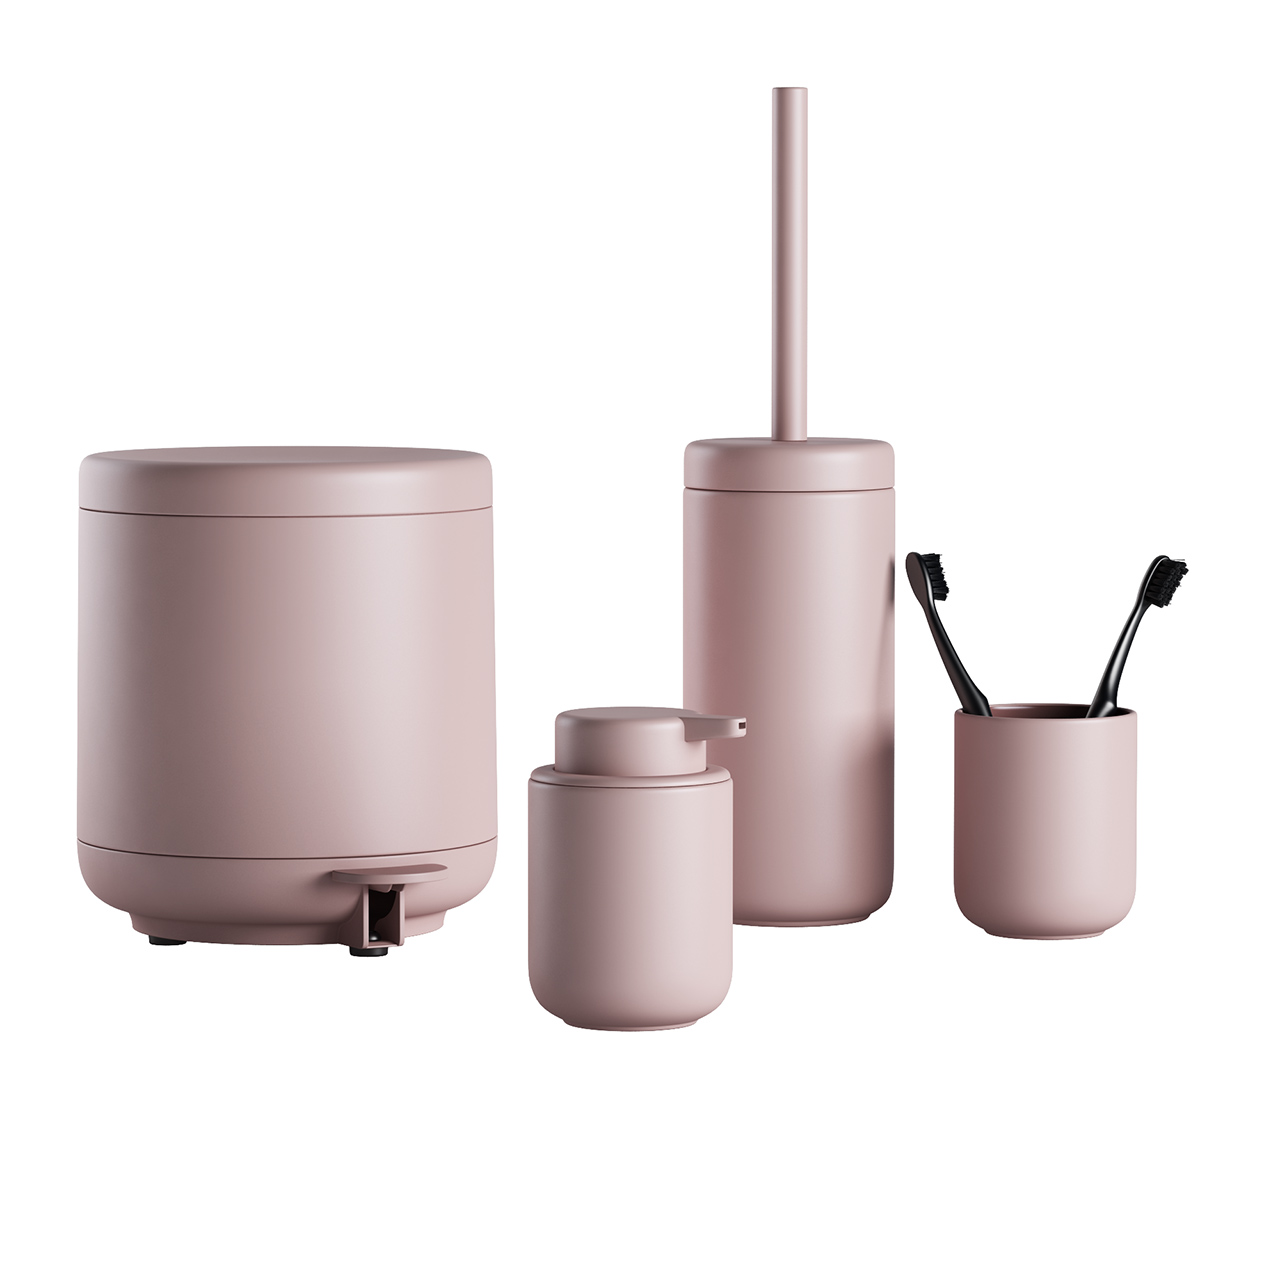 Ume Series Bathroom Accessories by Zone Denmark